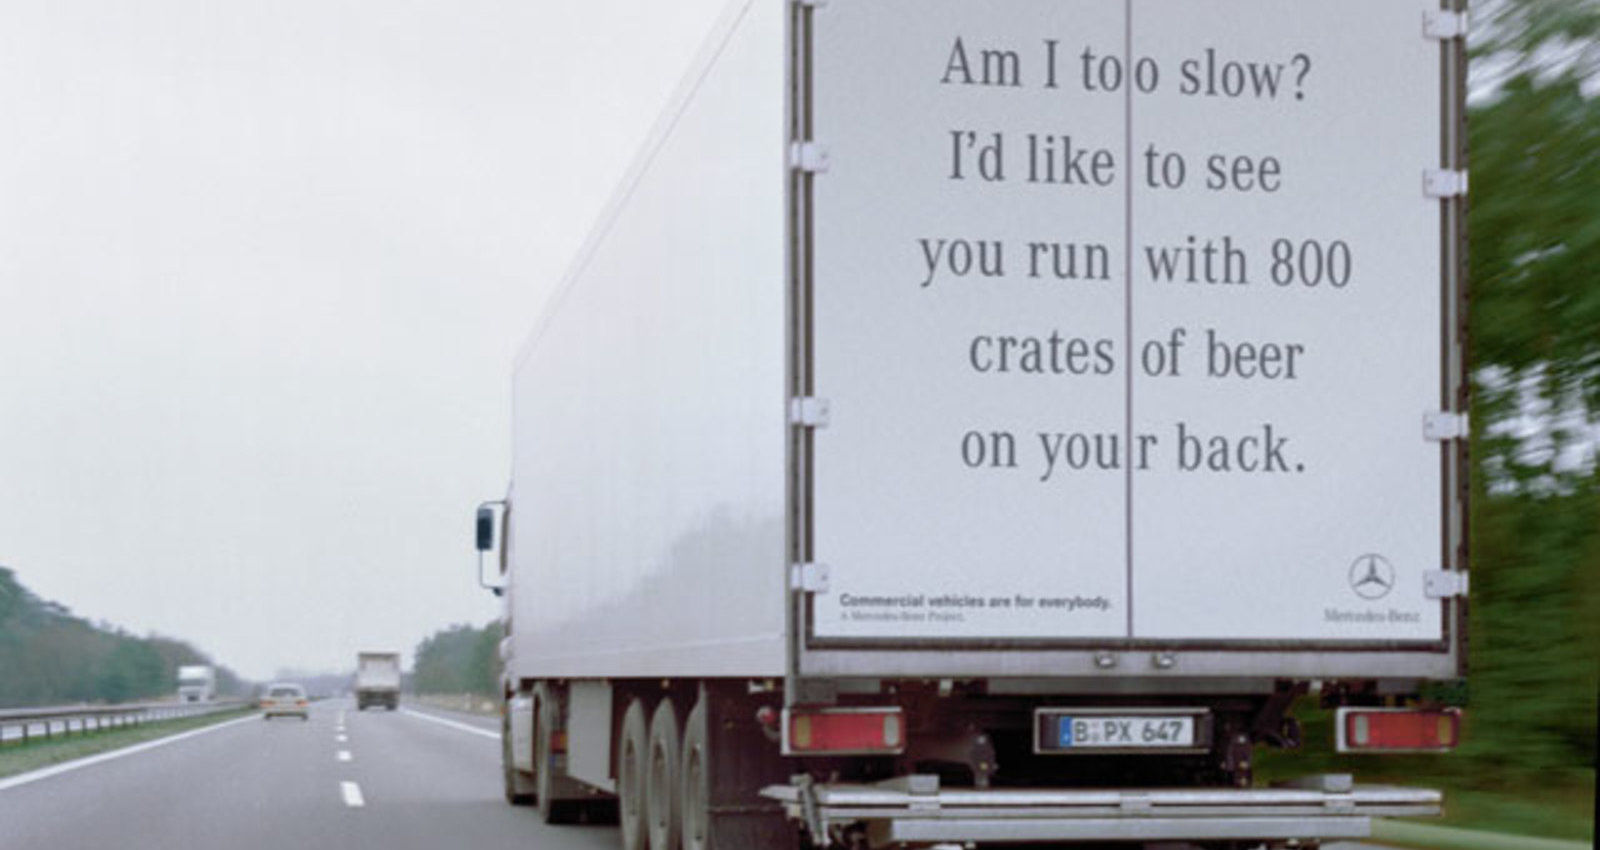 The Commercial Vehicles Are for Everybody Campaign